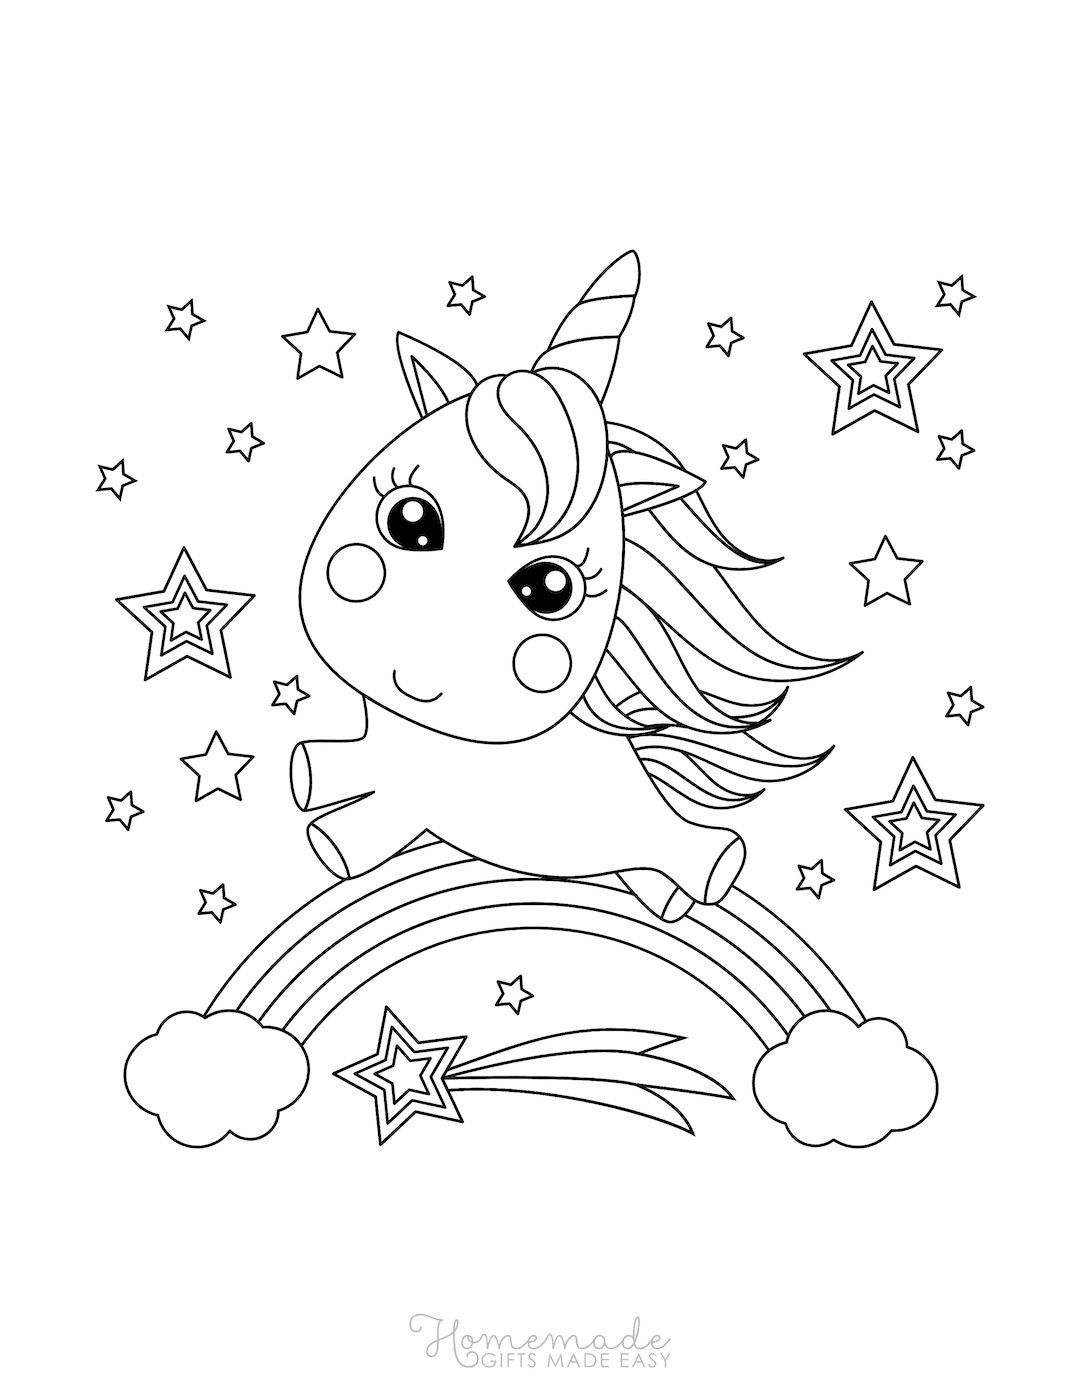 75 Magical Unicorn Coloring Pages For Kids Adults Free Printables Unicorn Coloring Pages Coloring Pages Zoo Coloring Pages